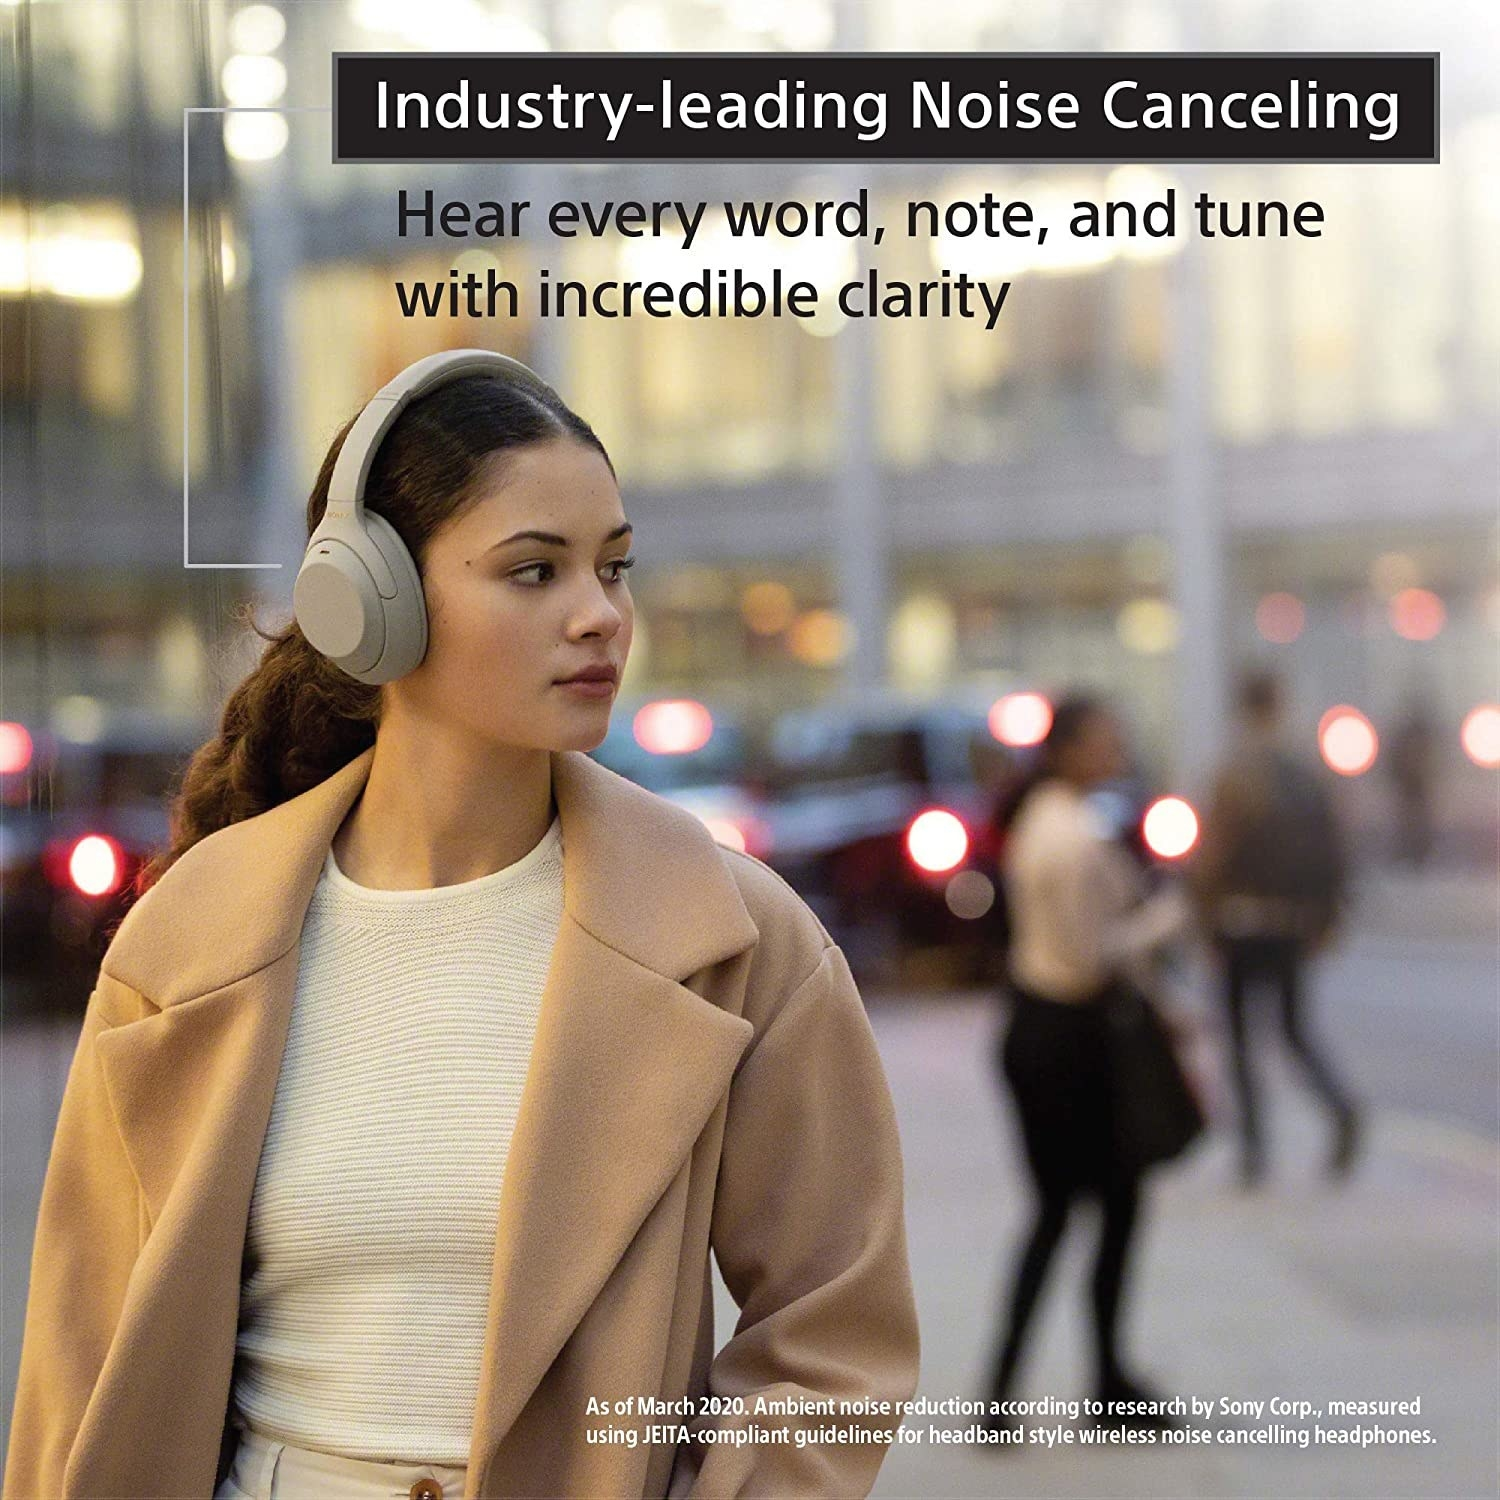 """Model wearing the white headphones with text on the image that says """"industry-leading noise canceling"""""""